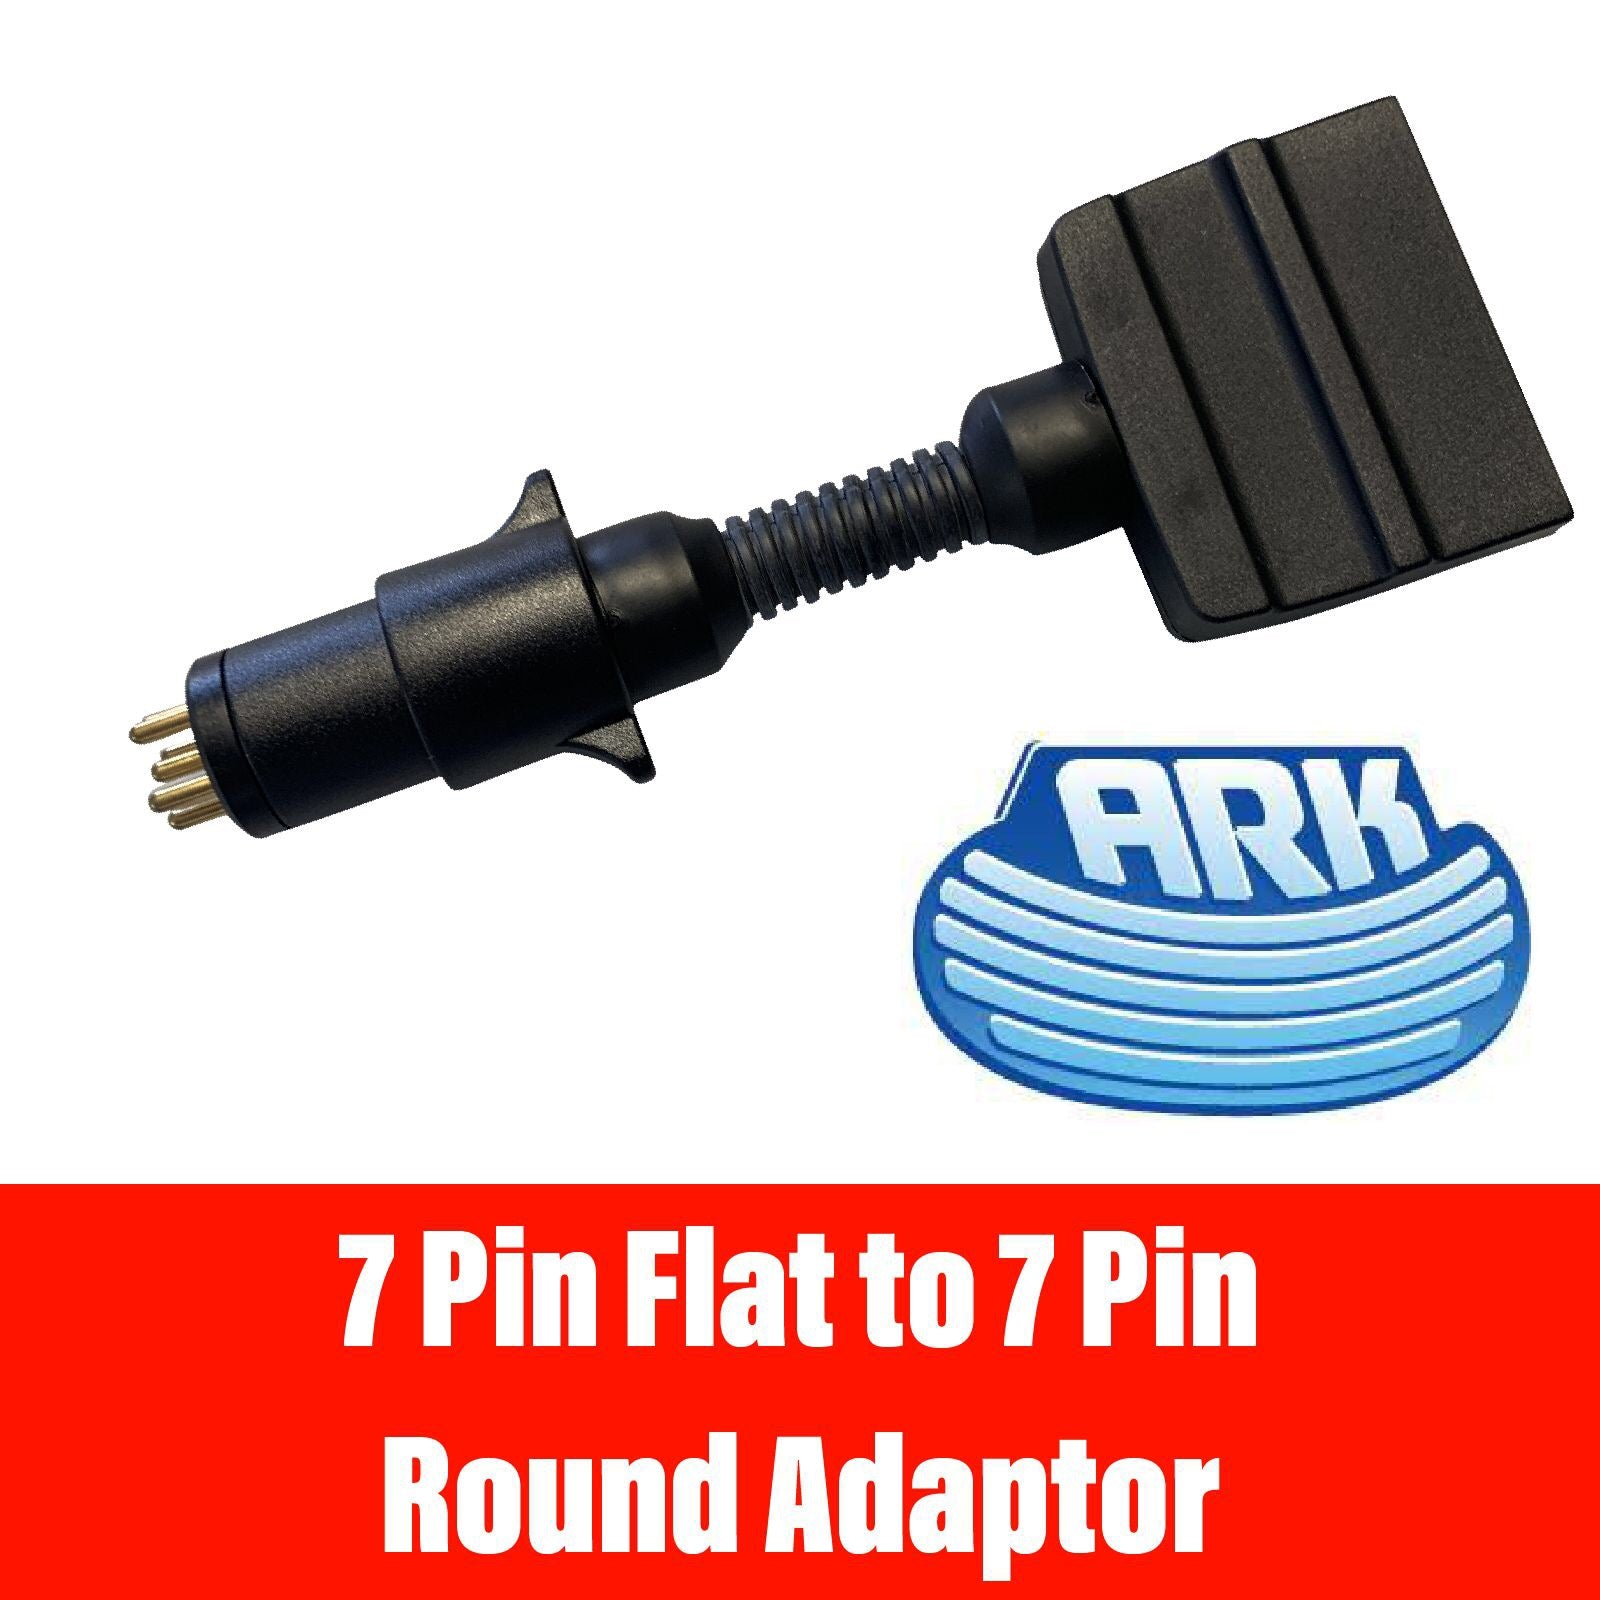 ARK 7 PIN FLAT TO 7 PIN Round Adaptor